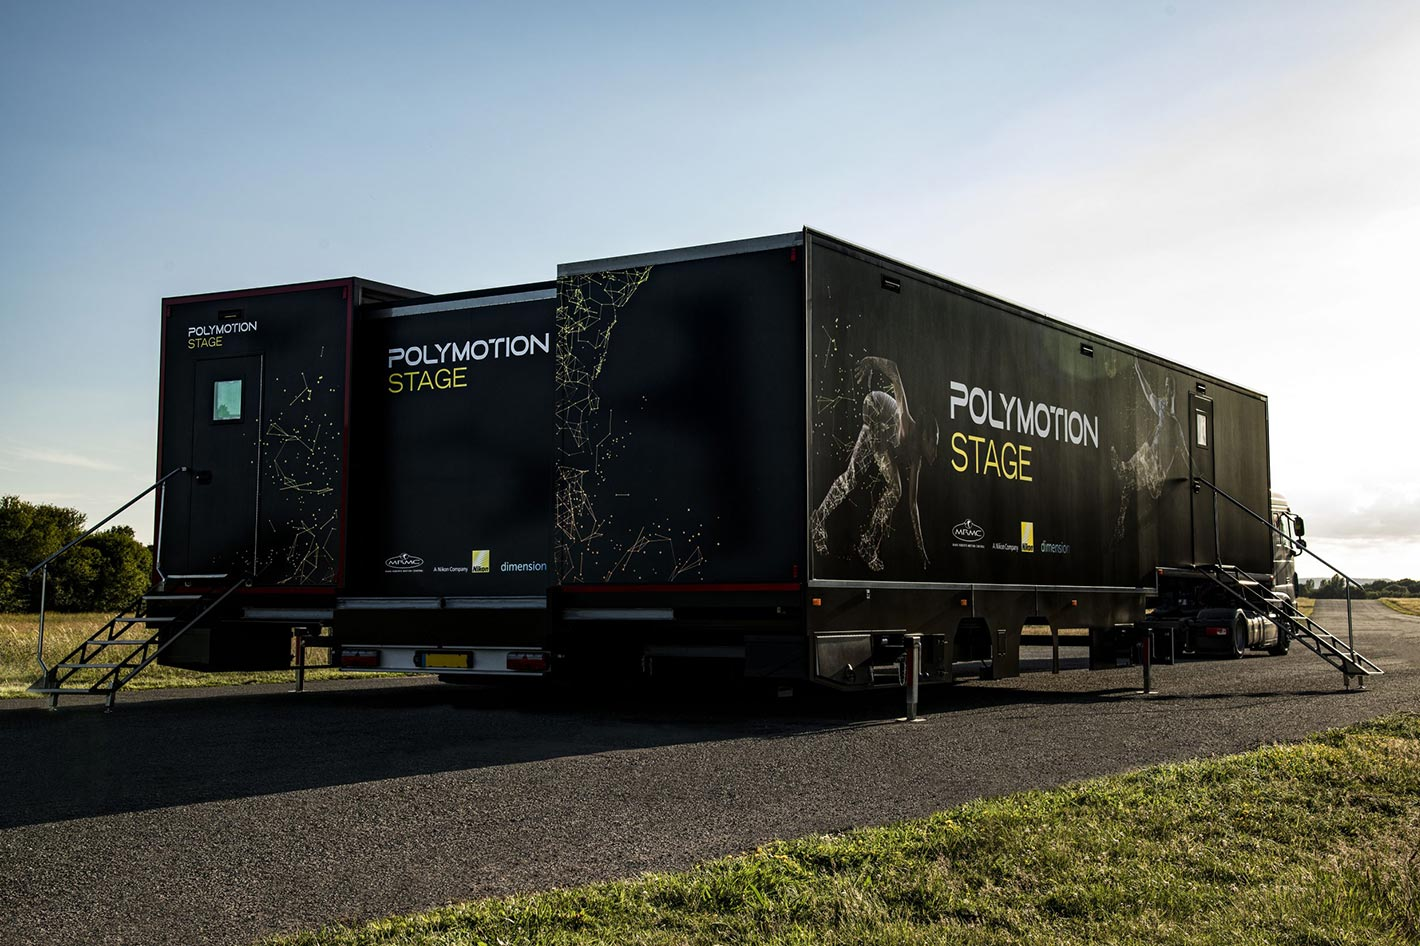 Polymotion Stage Truck: world's first volumetric studio on wheels